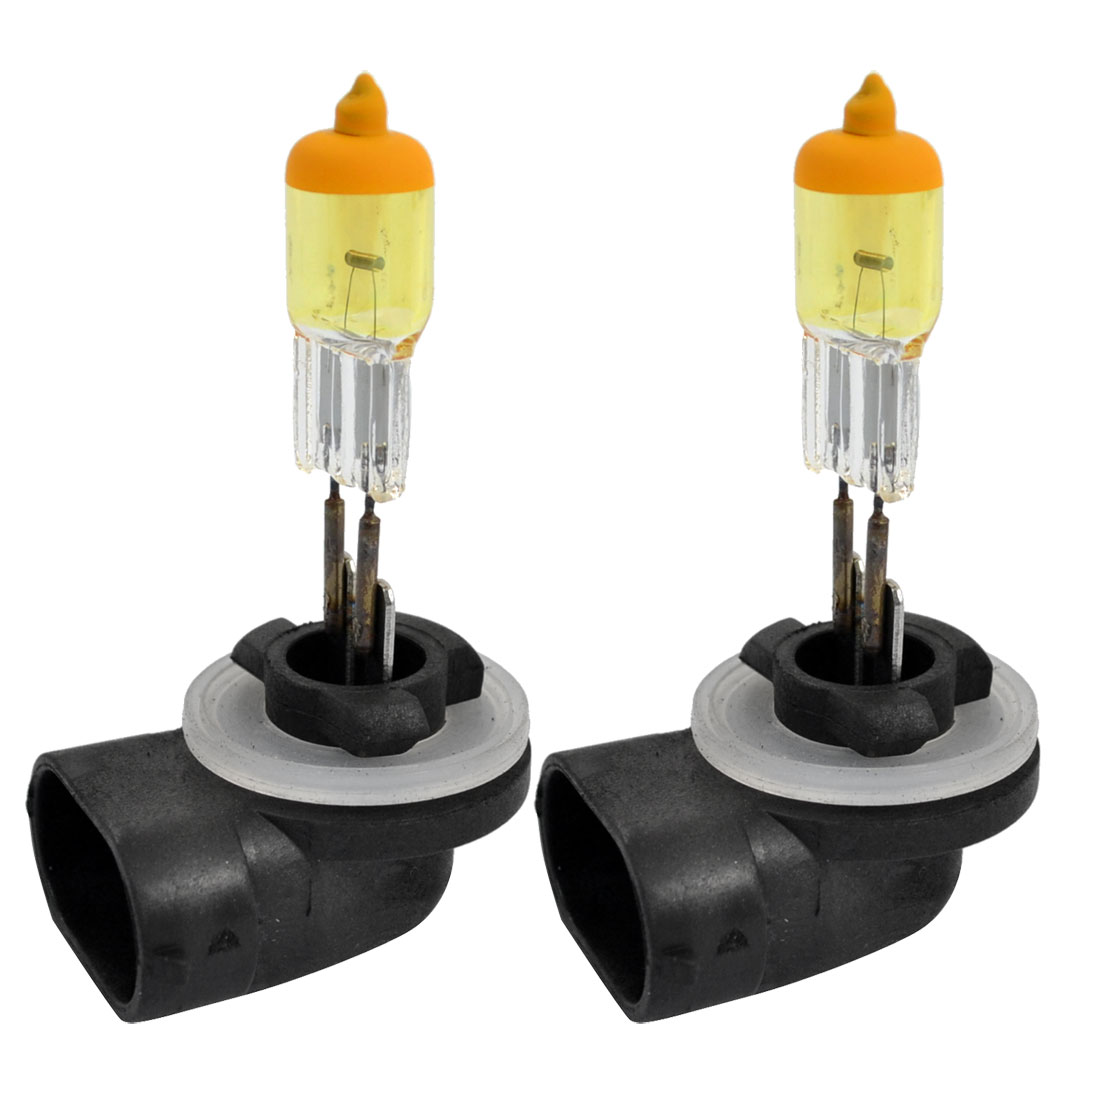 2 Pcs 12V Halogen 881 Socket 27W Amber Auto Car Foglight Head Light Lamp 3000K